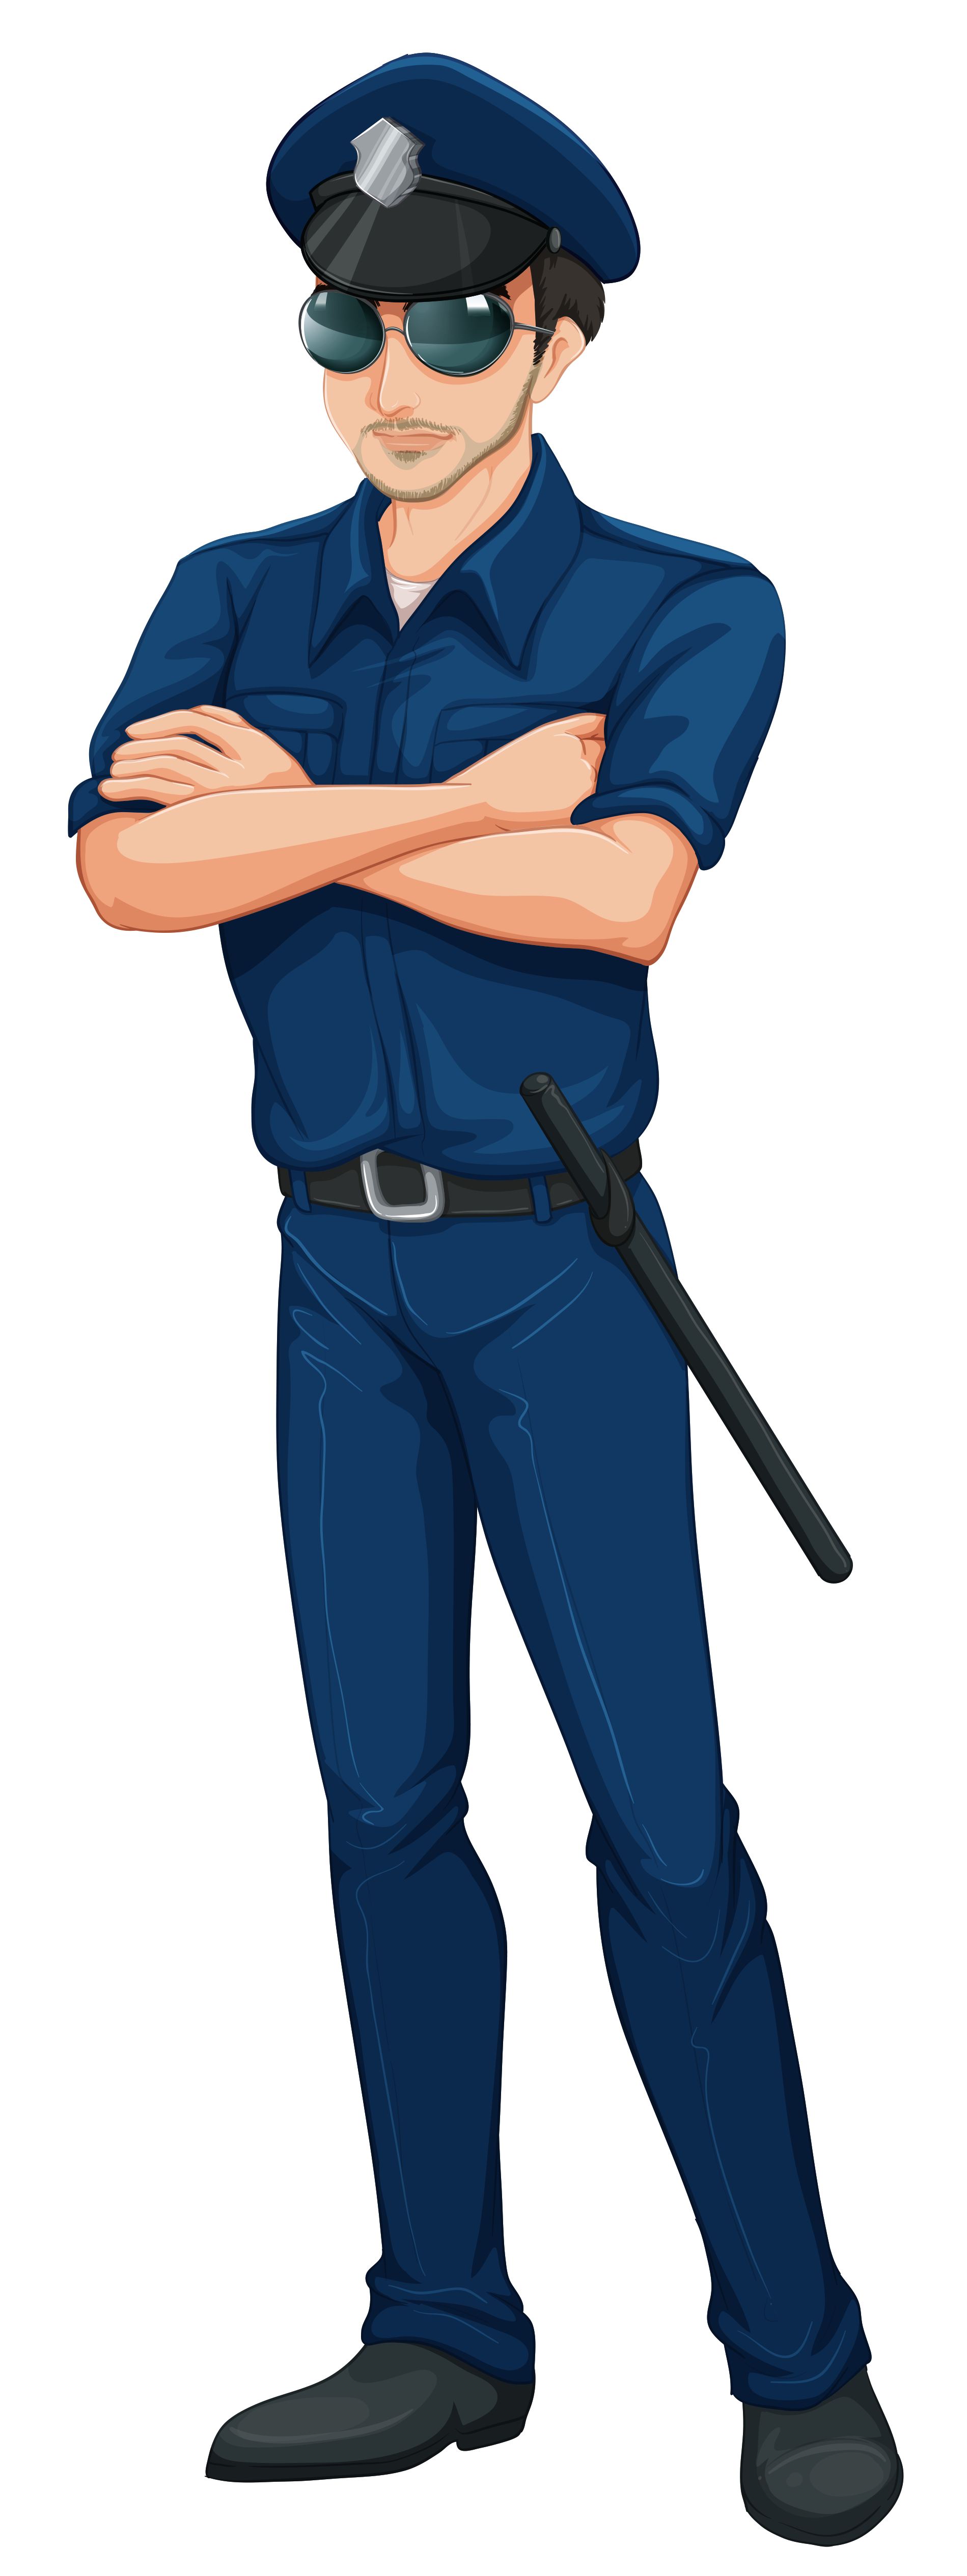 1899x5059 Police Clipart Policeman